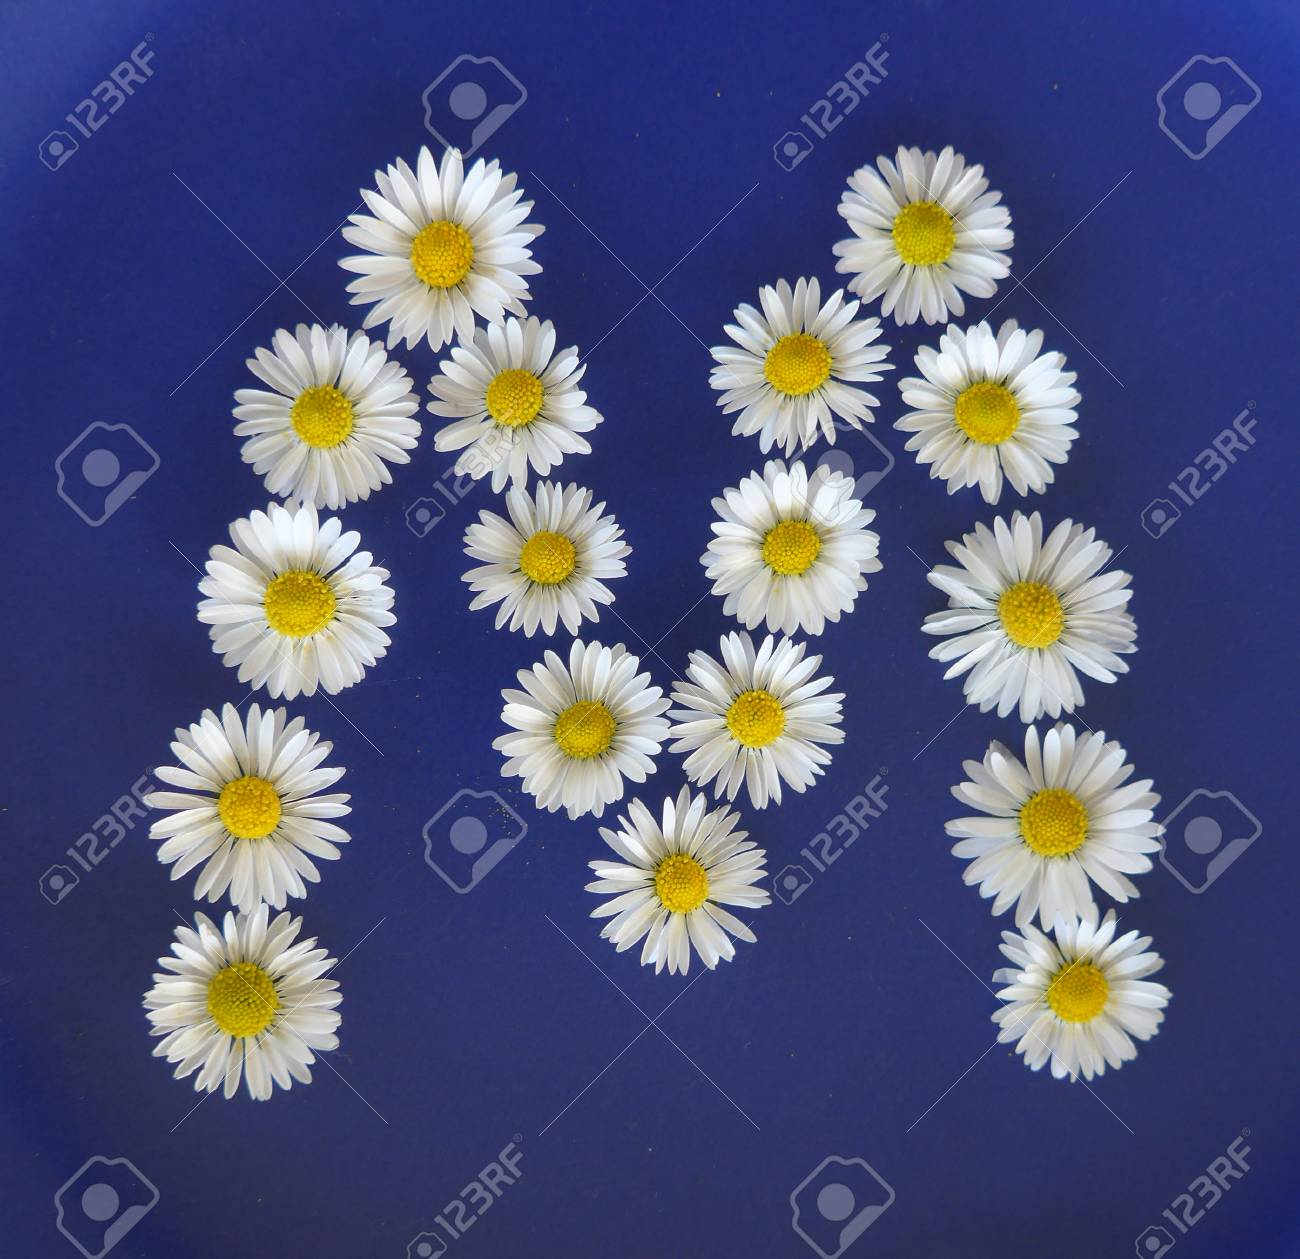 Letter m from white flowers daisies bellis perennis close up letter m from white flowers daisies bellis perennis close up on izmirmasajfo